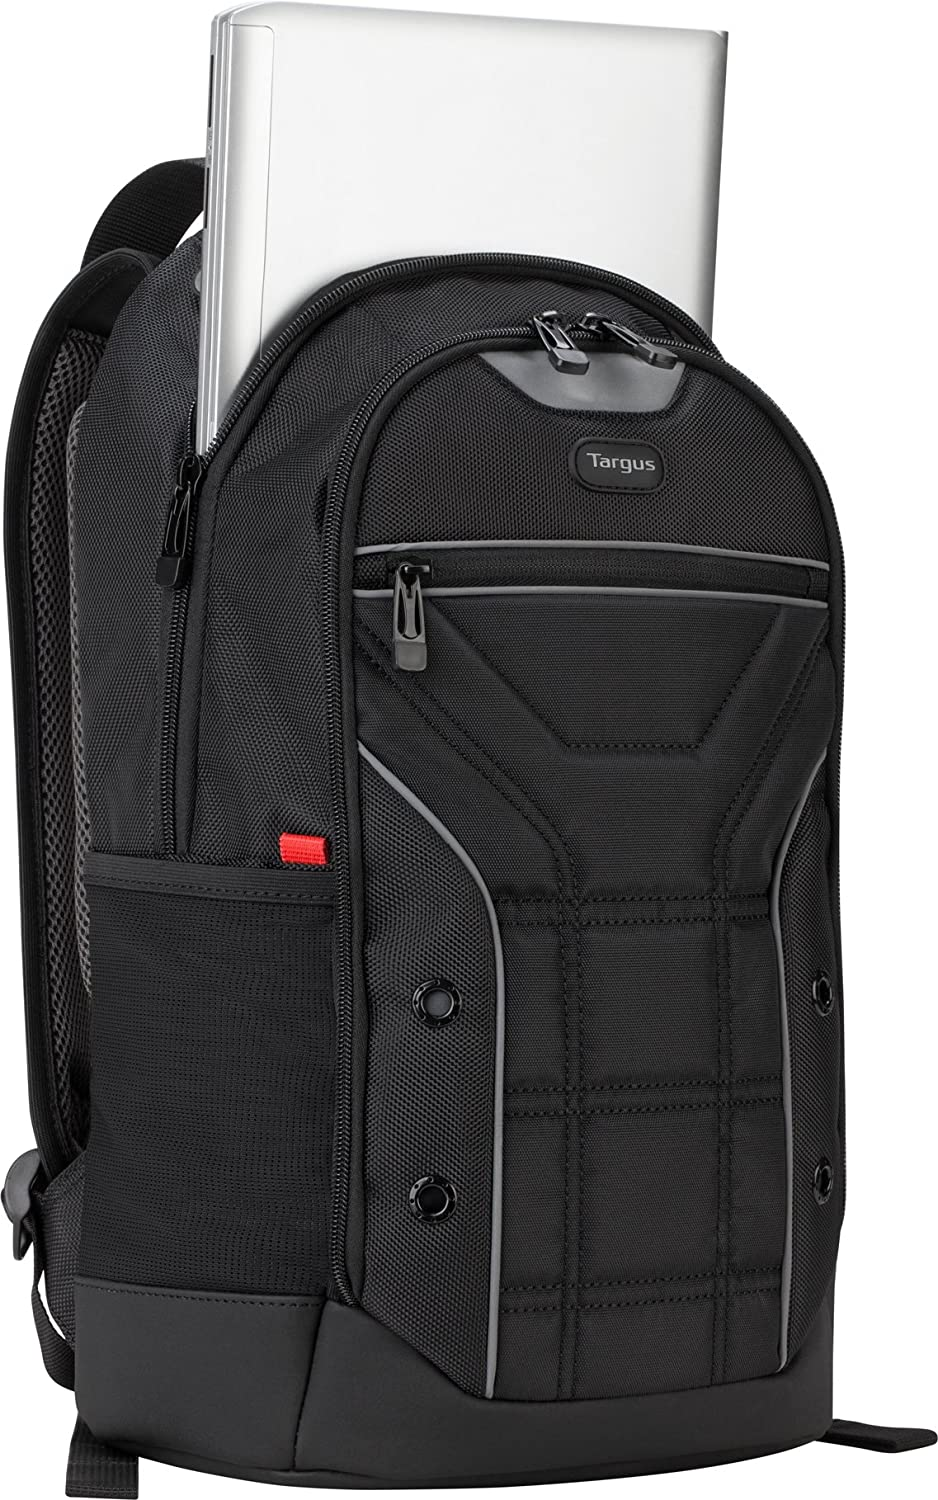 14 Best Handsome Boy Images On Pinterest: Selecting The Best 14 Inch Laptop Backpacks